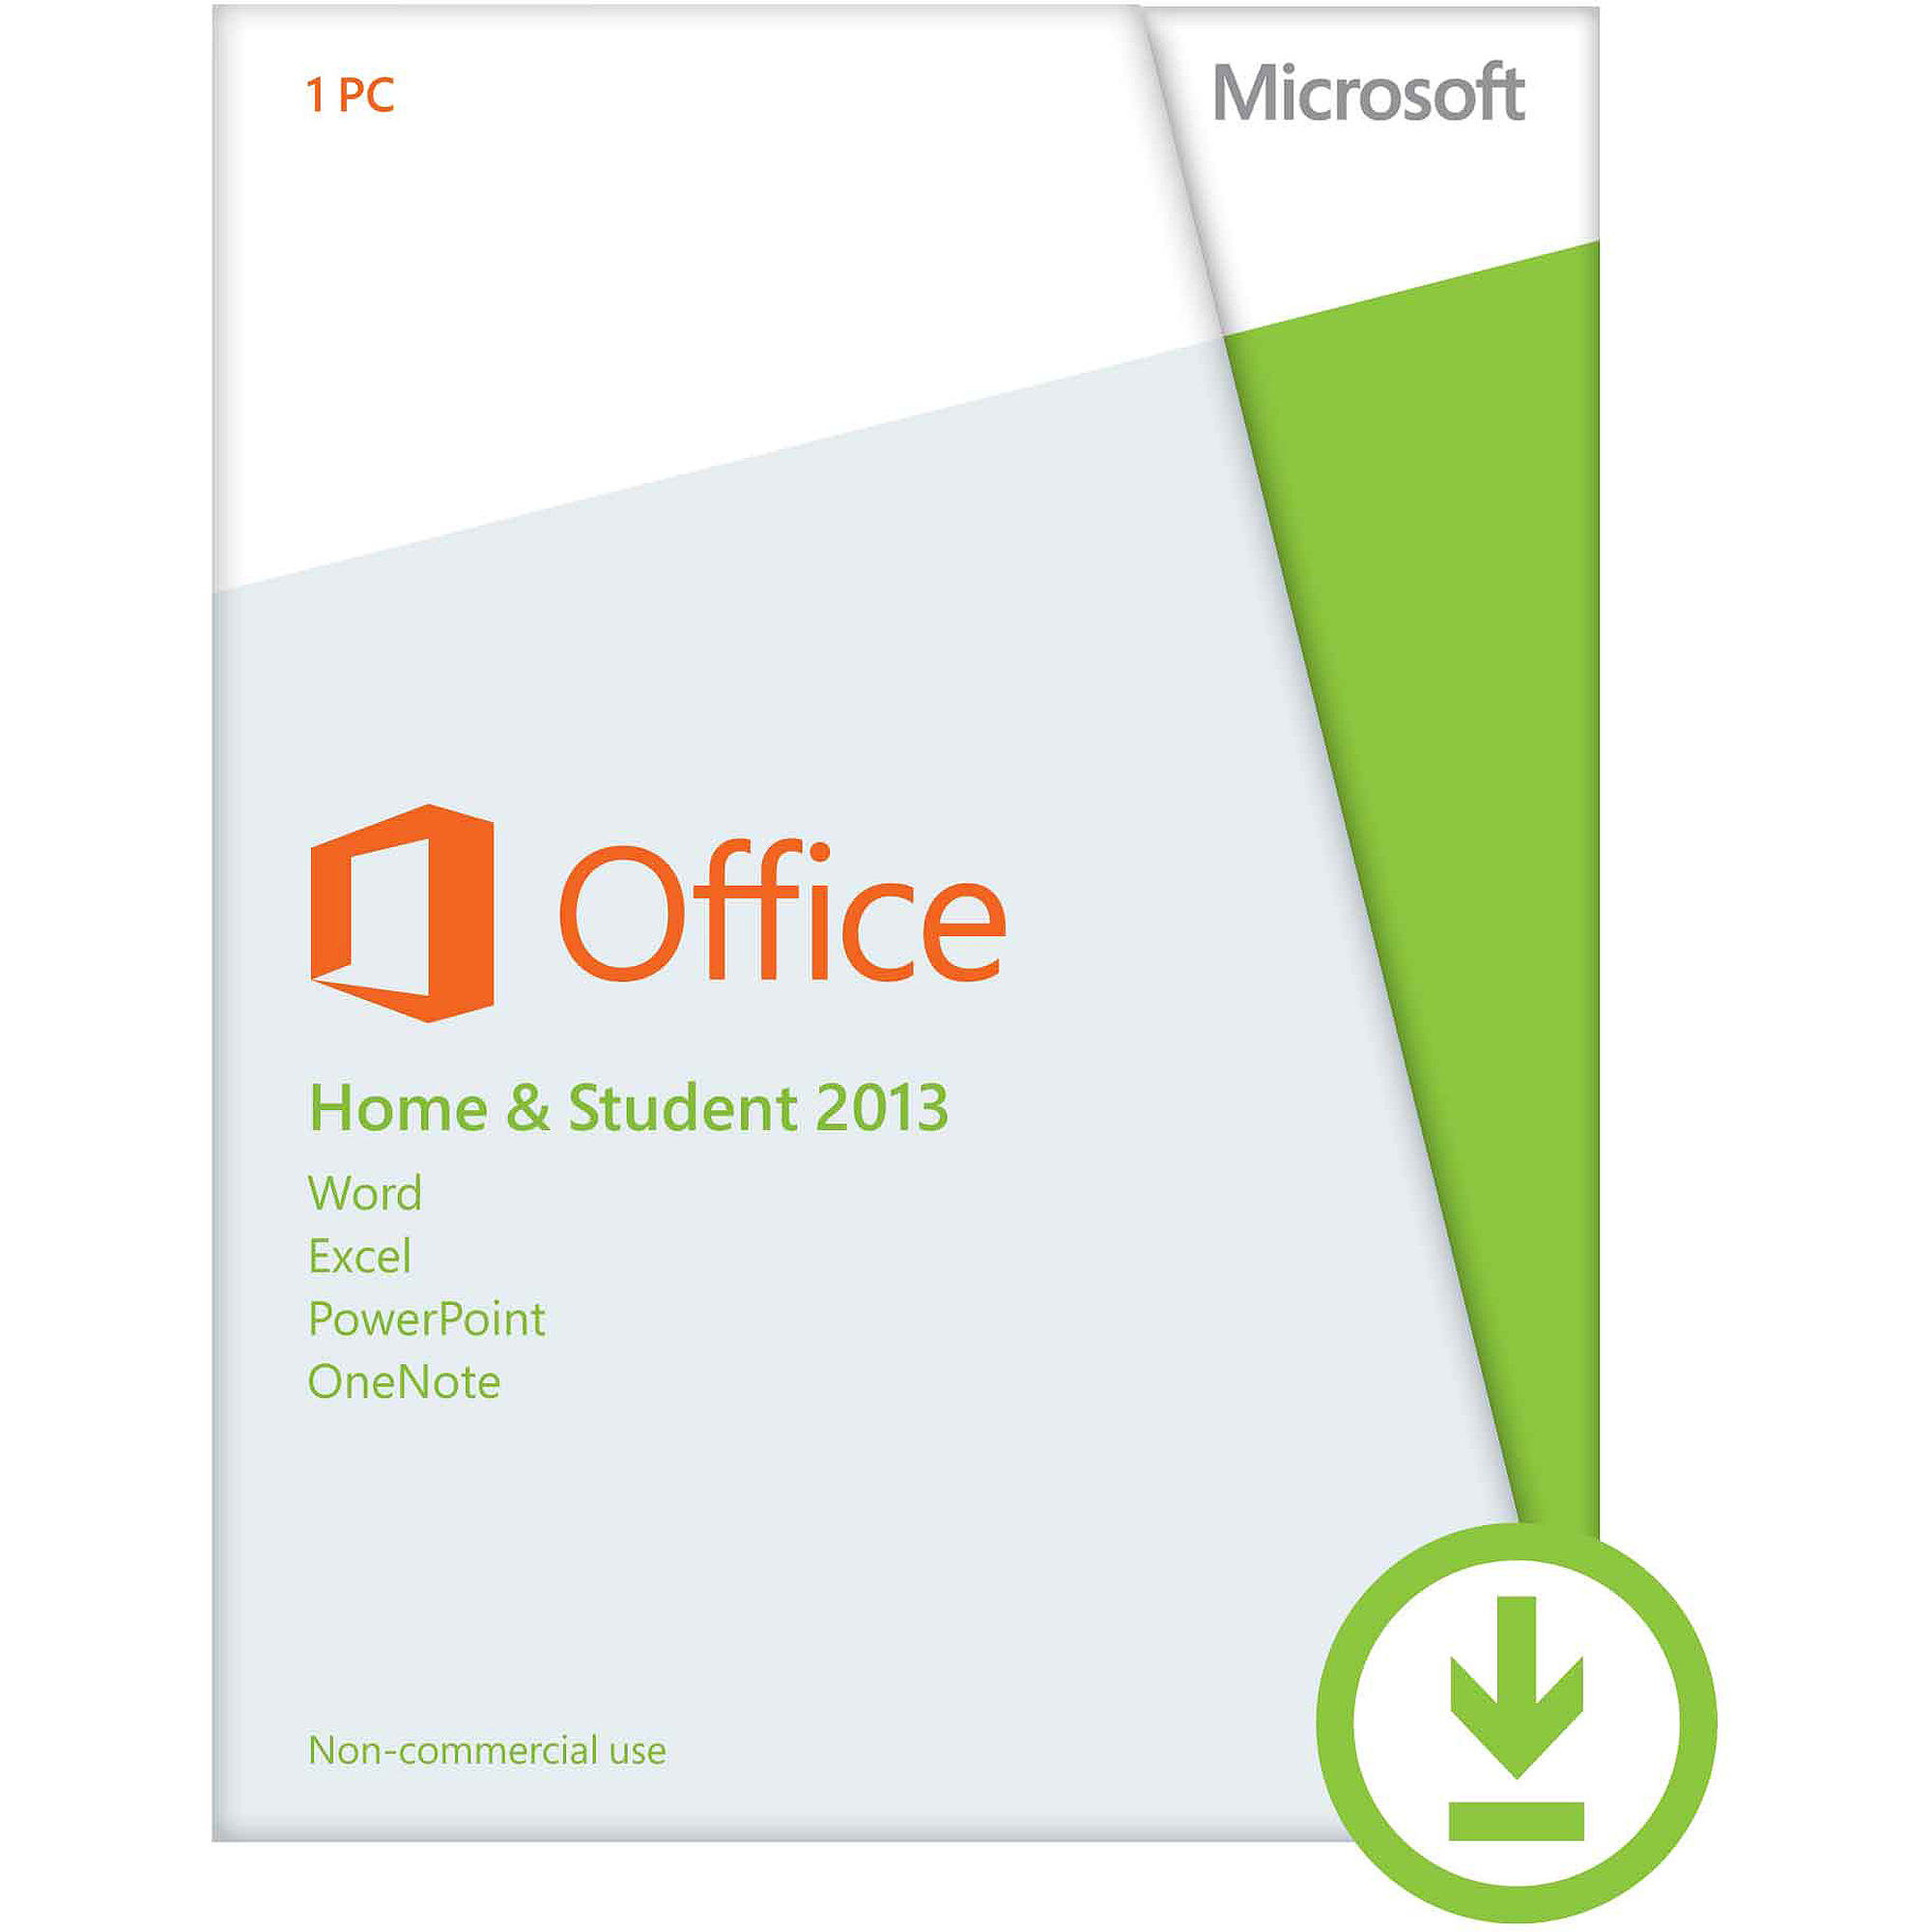 Microsoft Office Home & Student 2013 - 1 PC  (Download)